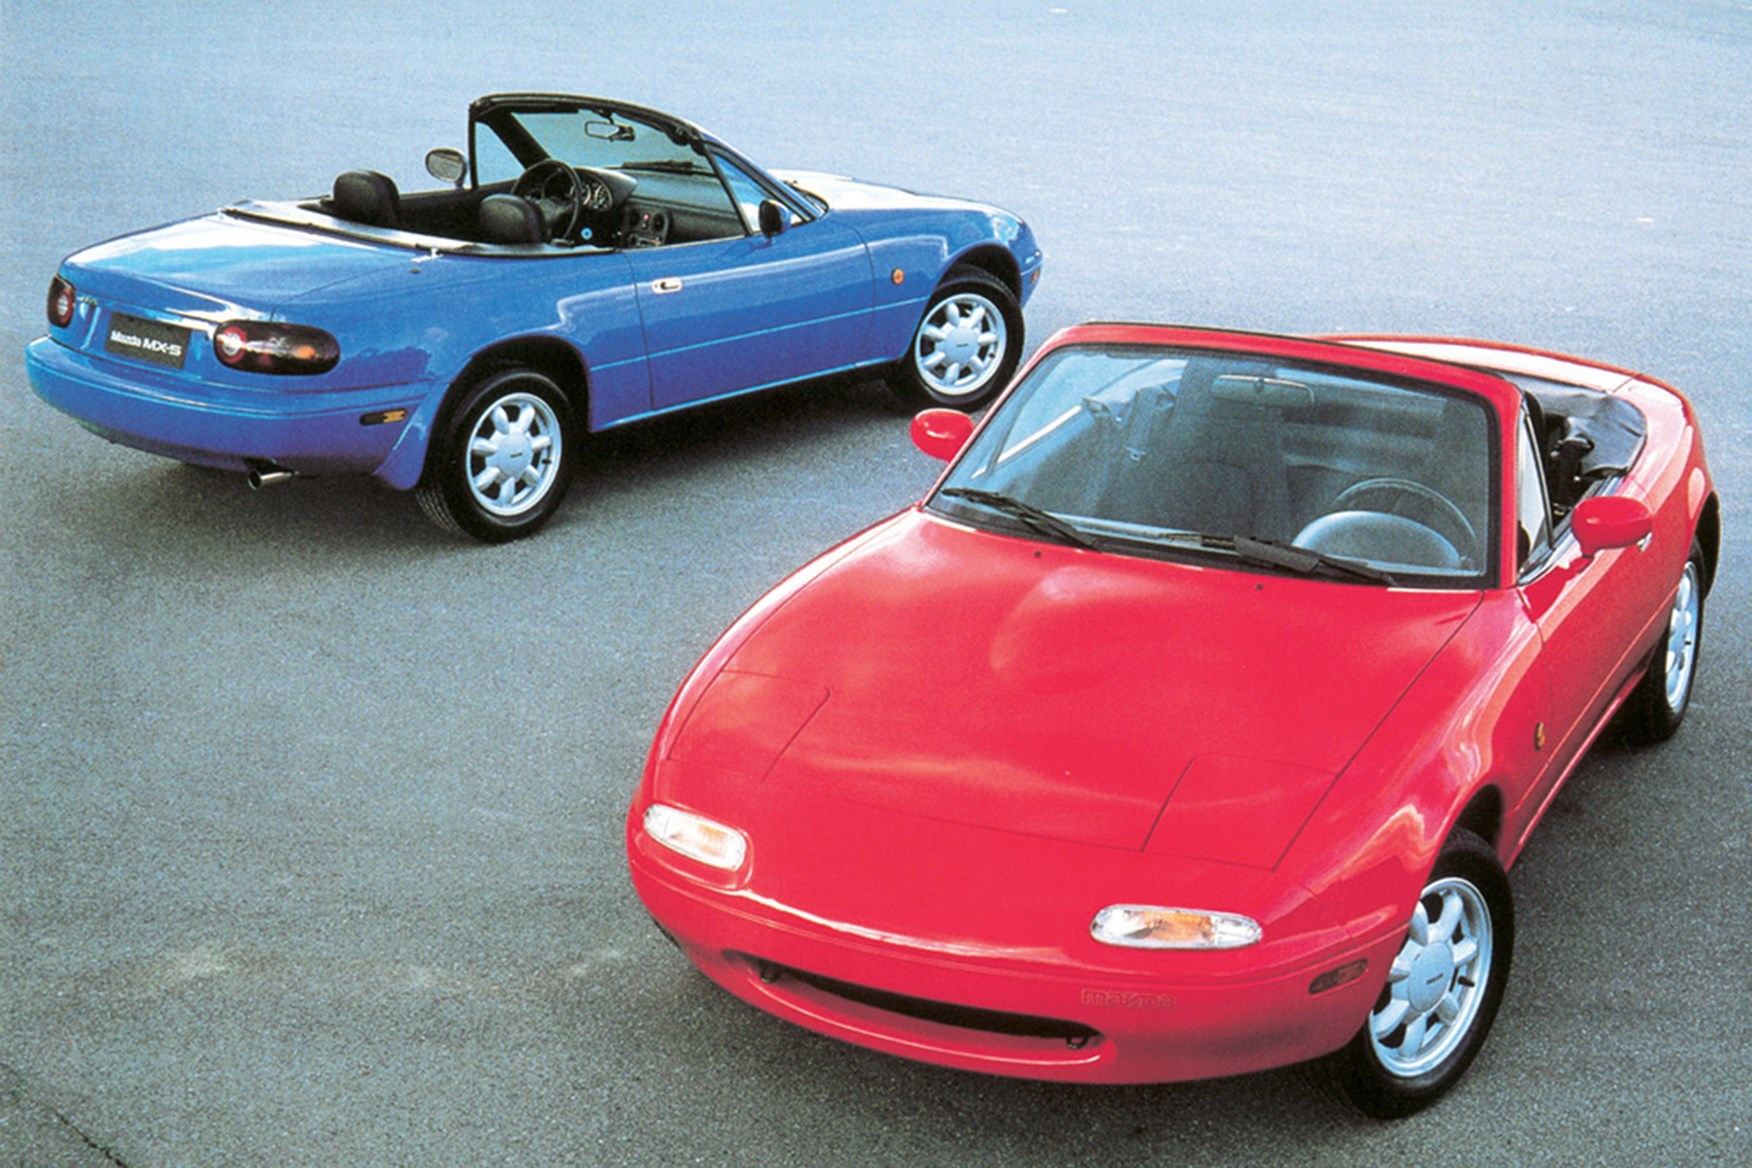 Great enthusiast s cars for less than £1 000